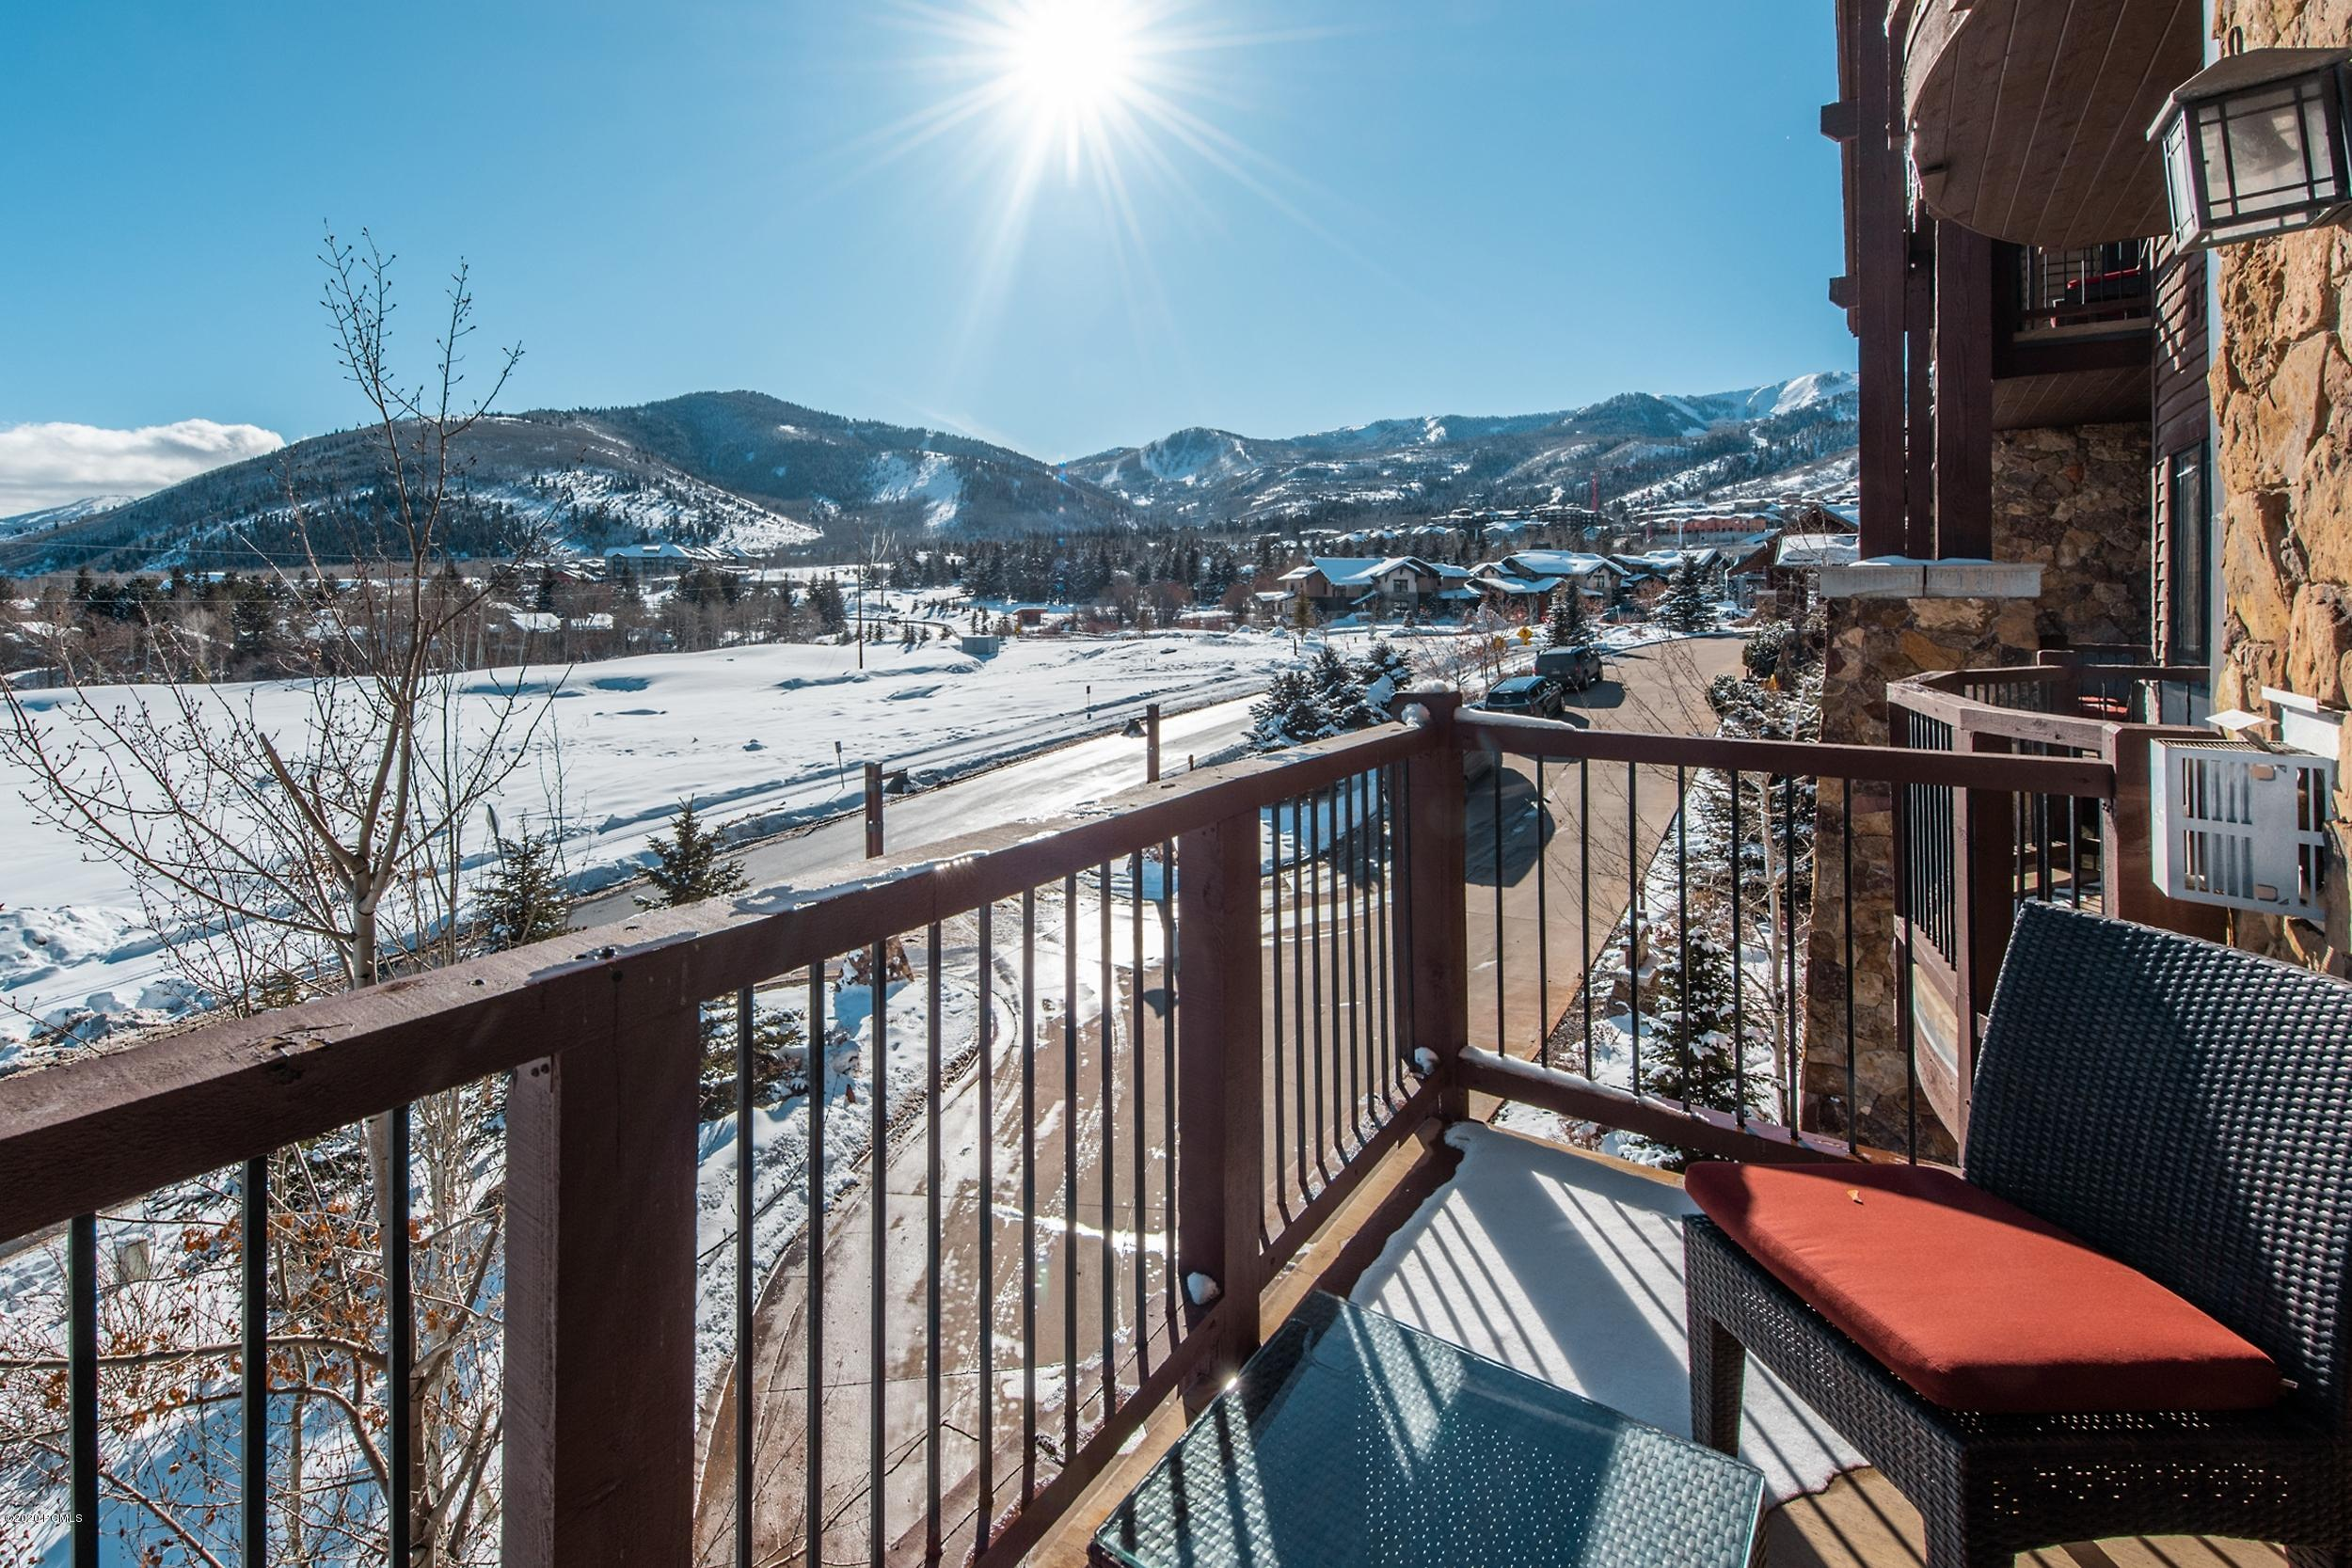 2100 Frostwood Blvd, Waldorf Astori, Park City, Utah 84098, 2 Bedrooms Bedrooms, ,3 BathroomsBathrooms,Condominium,For Sale,Frostwood Blvd, Waldorf Astori,11808399